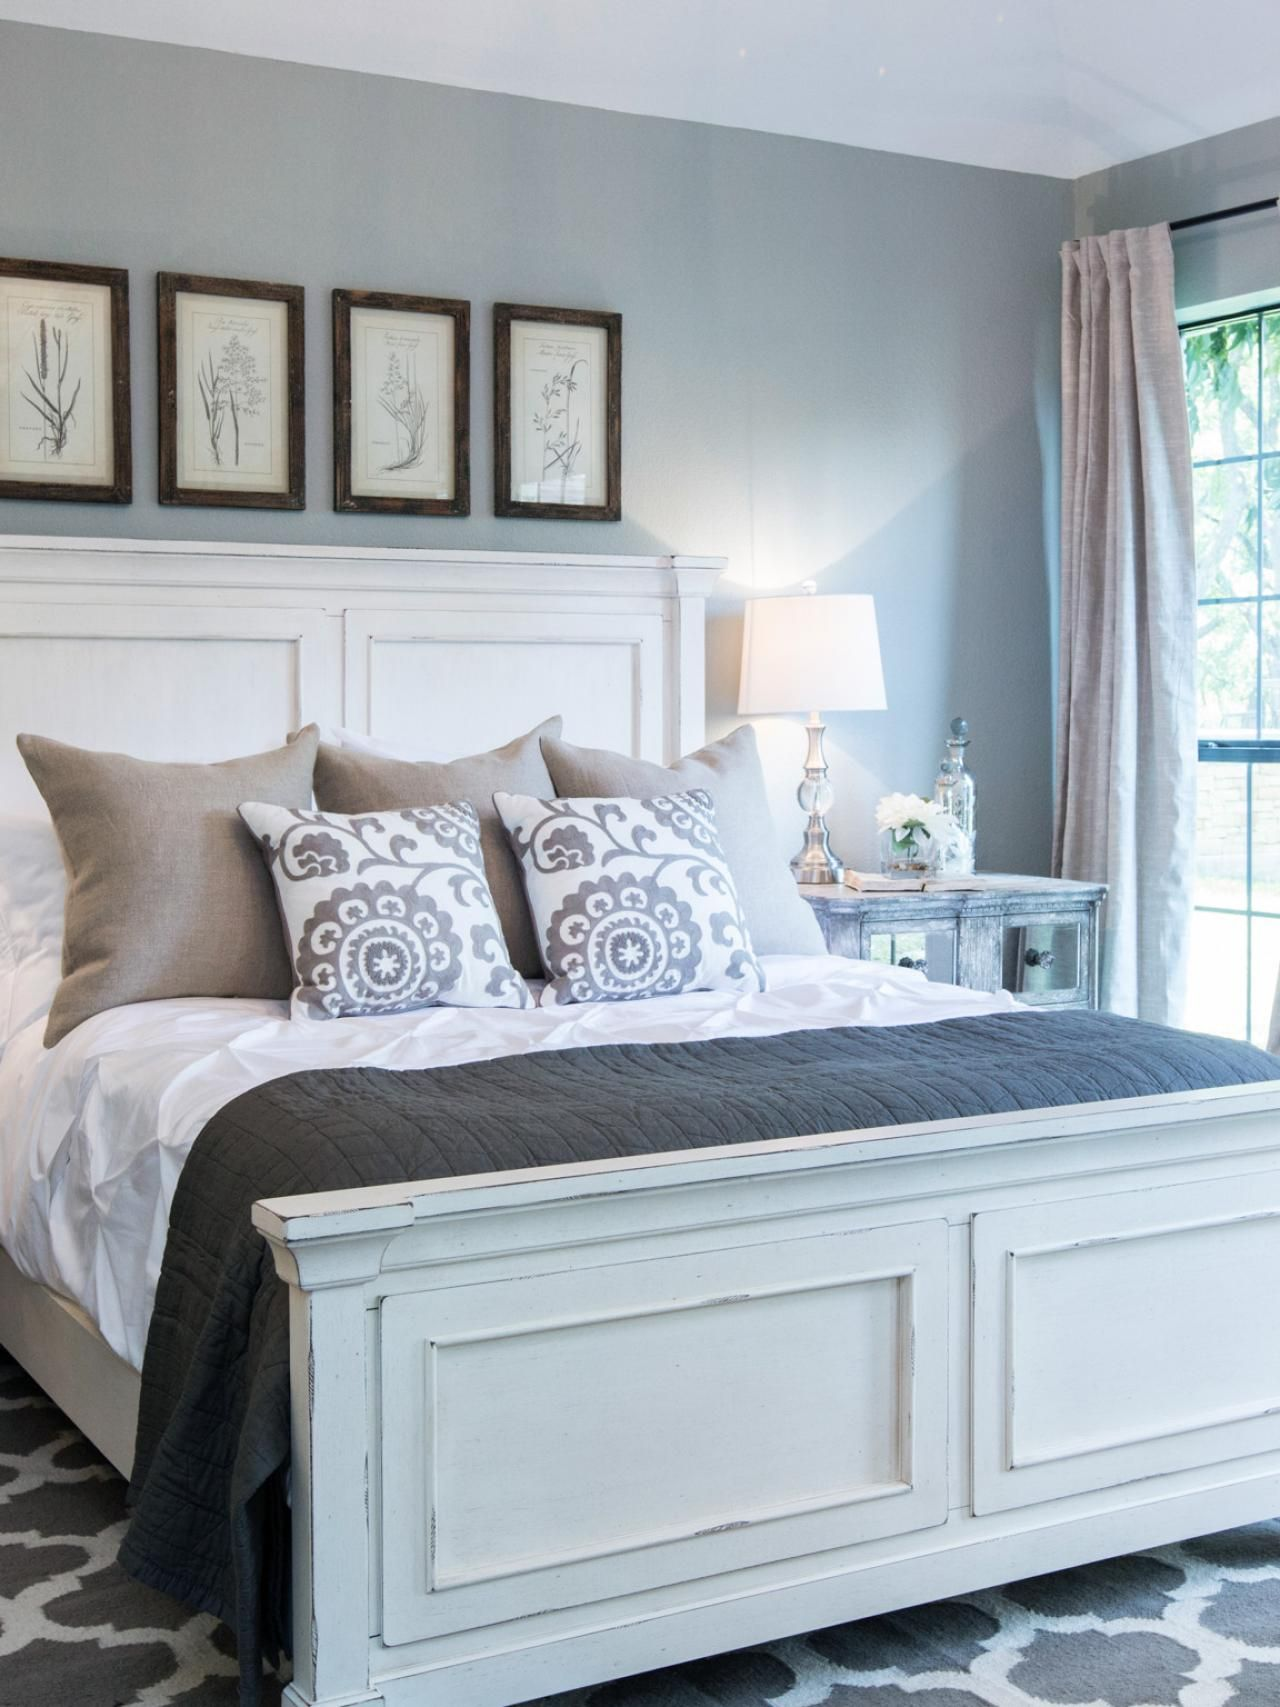 18+ Grey and tan master bedrooms ideas in 2021